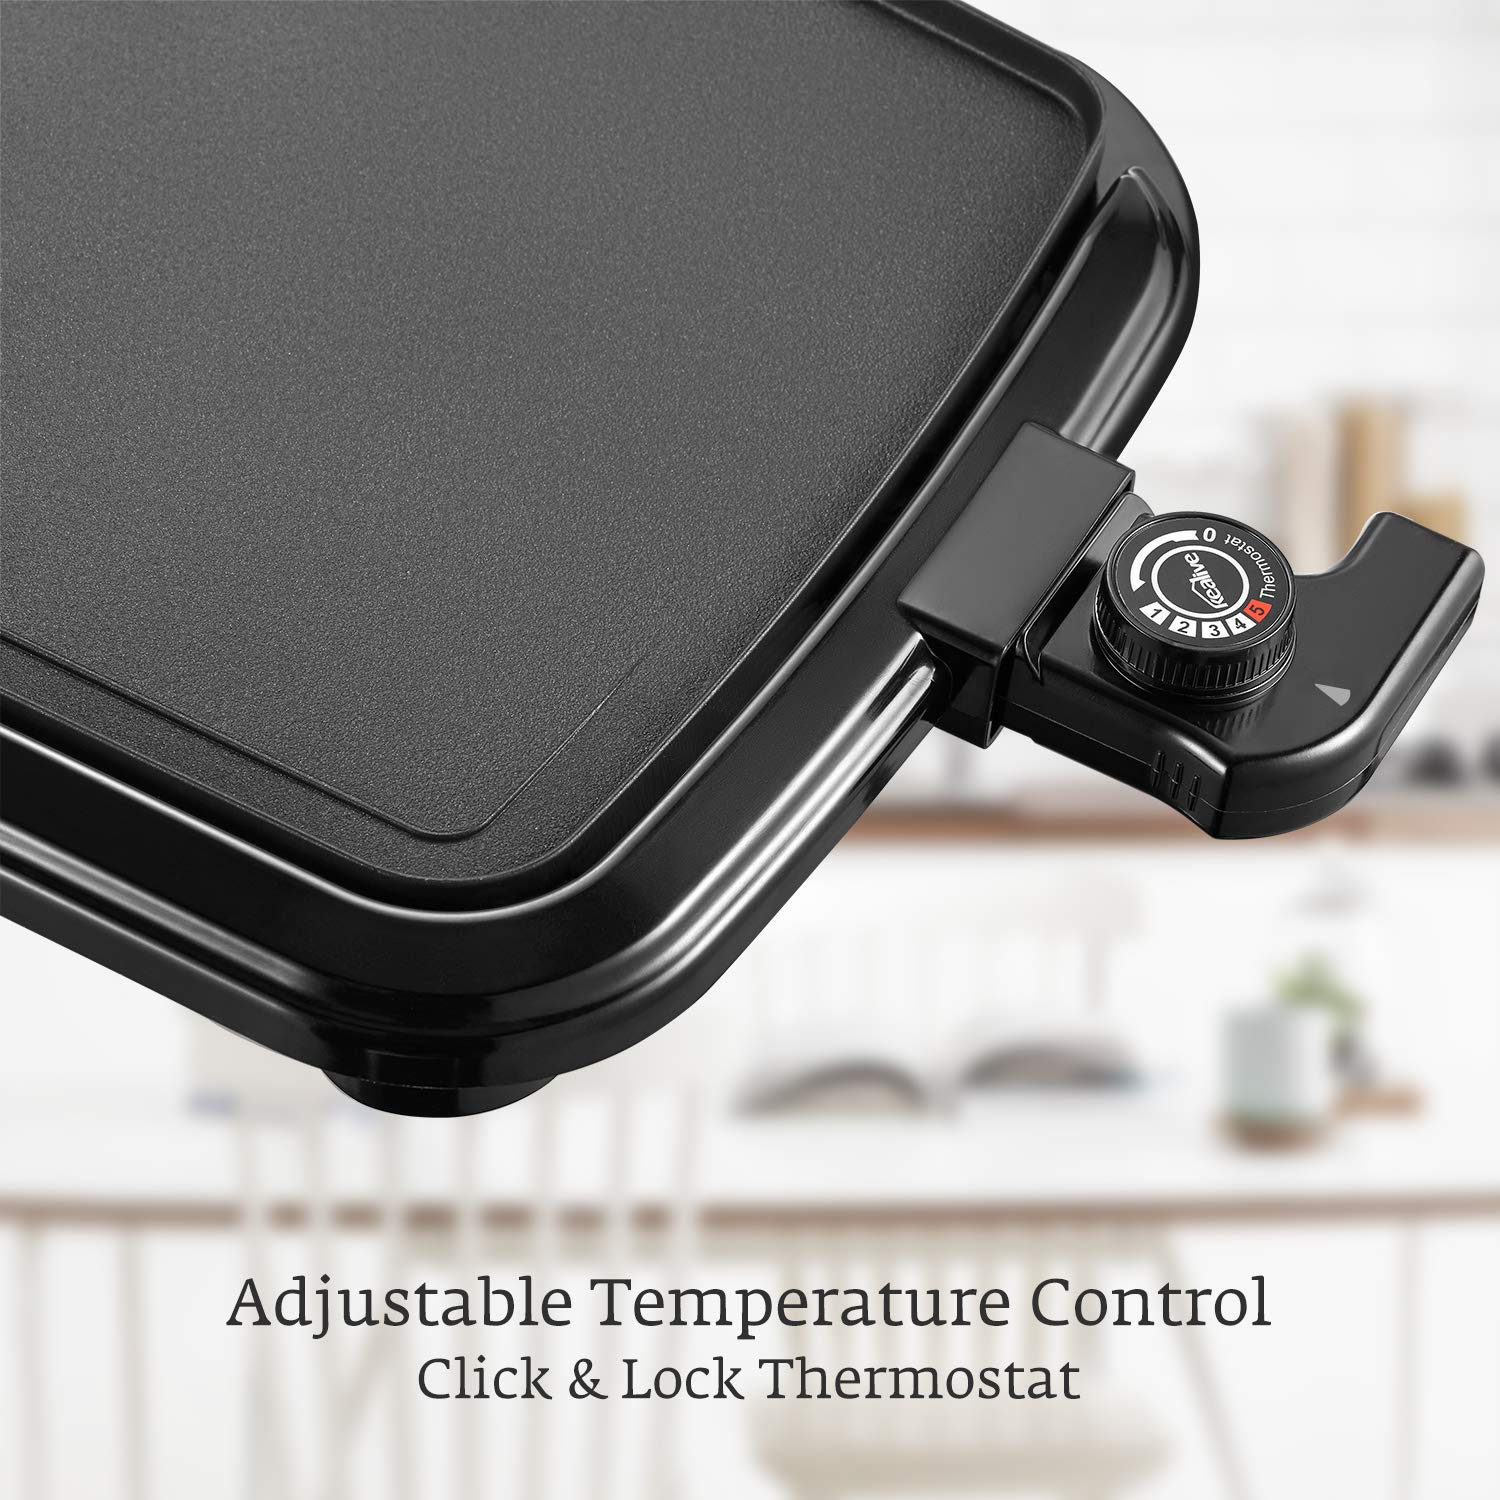 Kealive Griddle, Family-Sized Electric Grill Griddle 1500W with Drip Tray, Non-stick, 10''x20'', Black by Kealive (Image #3)